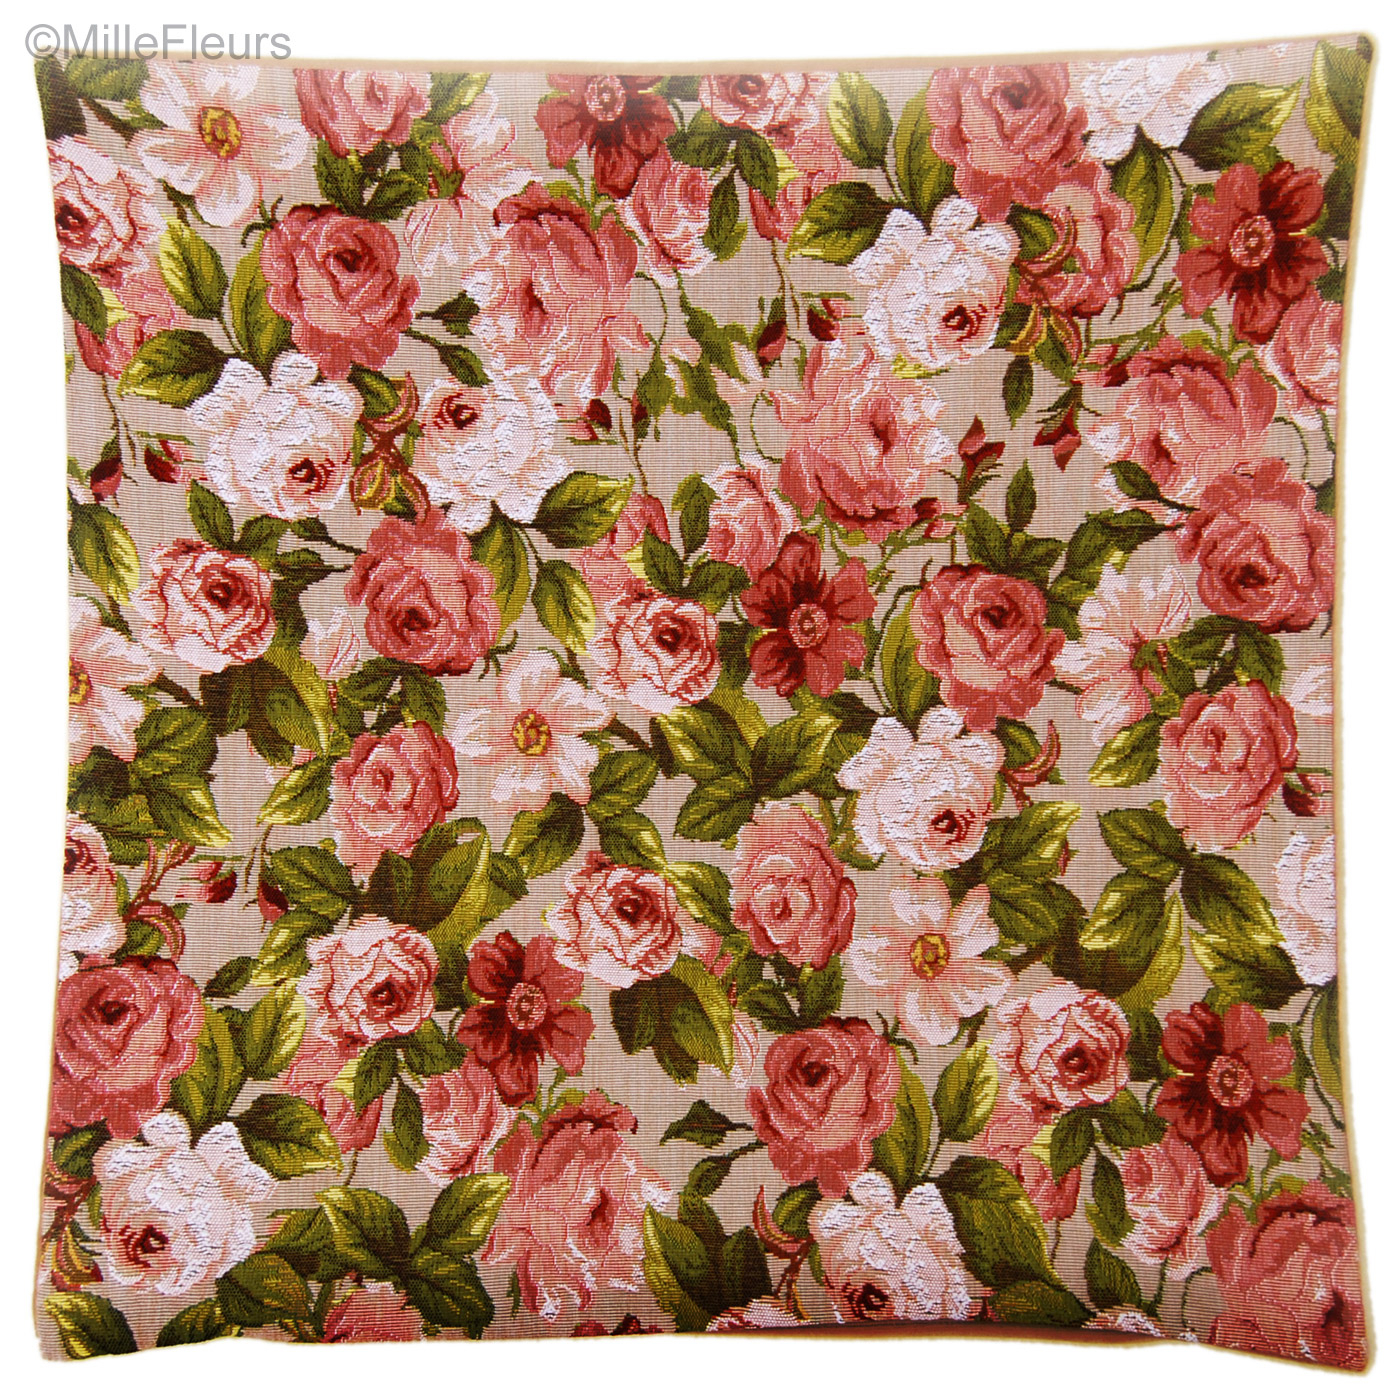 Roses – *** Clearence Sales *** – Tapestry Cushions – Mille Intended For 2018 Roses I Tapestries (View 13 of 20)